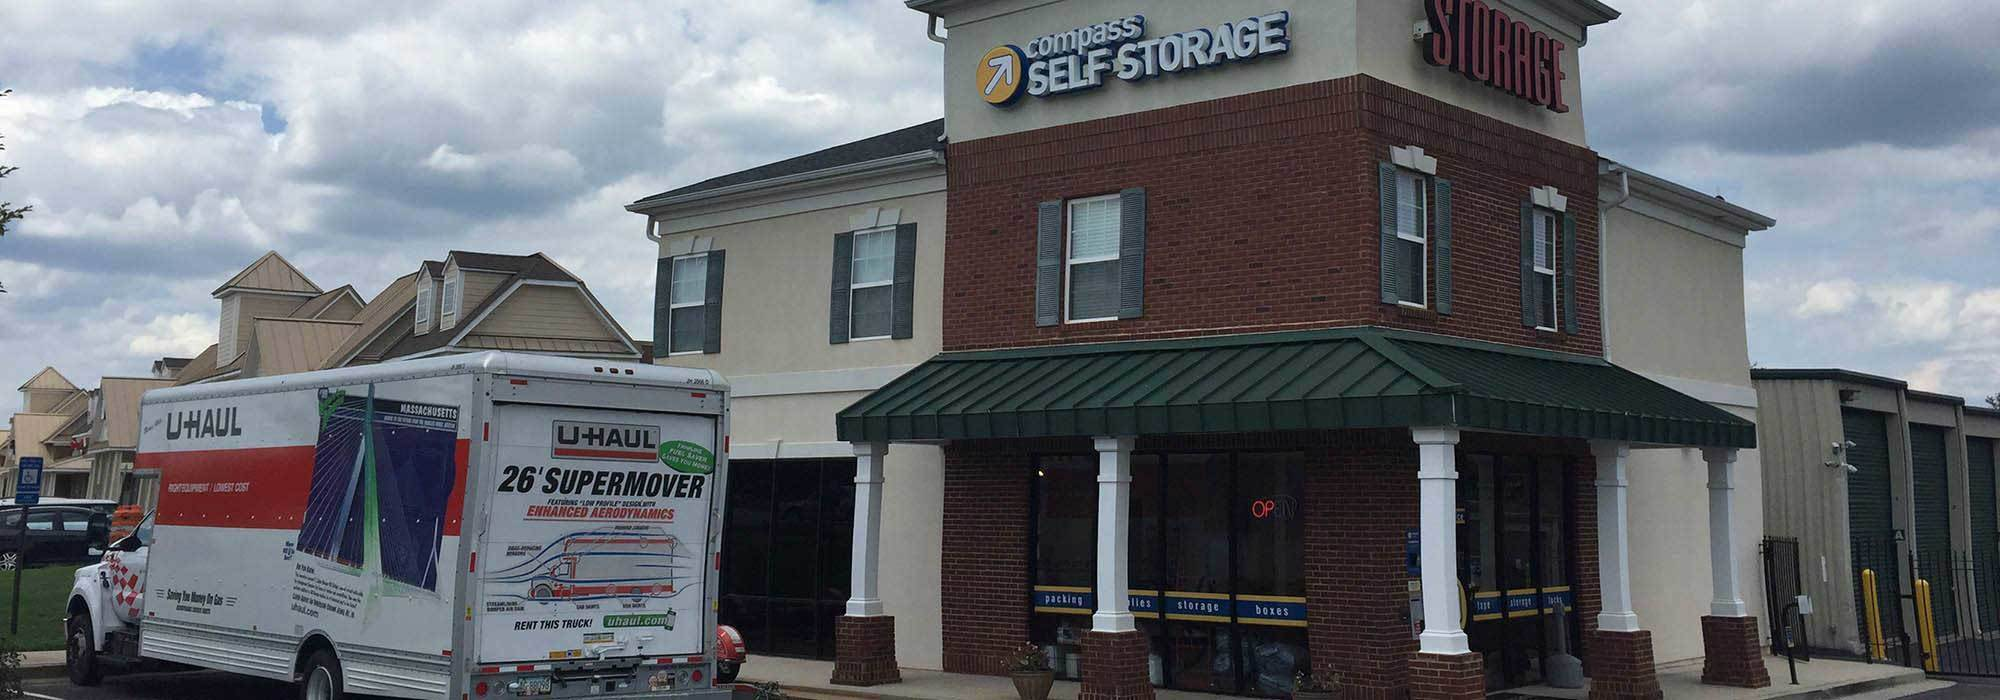 Self storage in McDonough GA